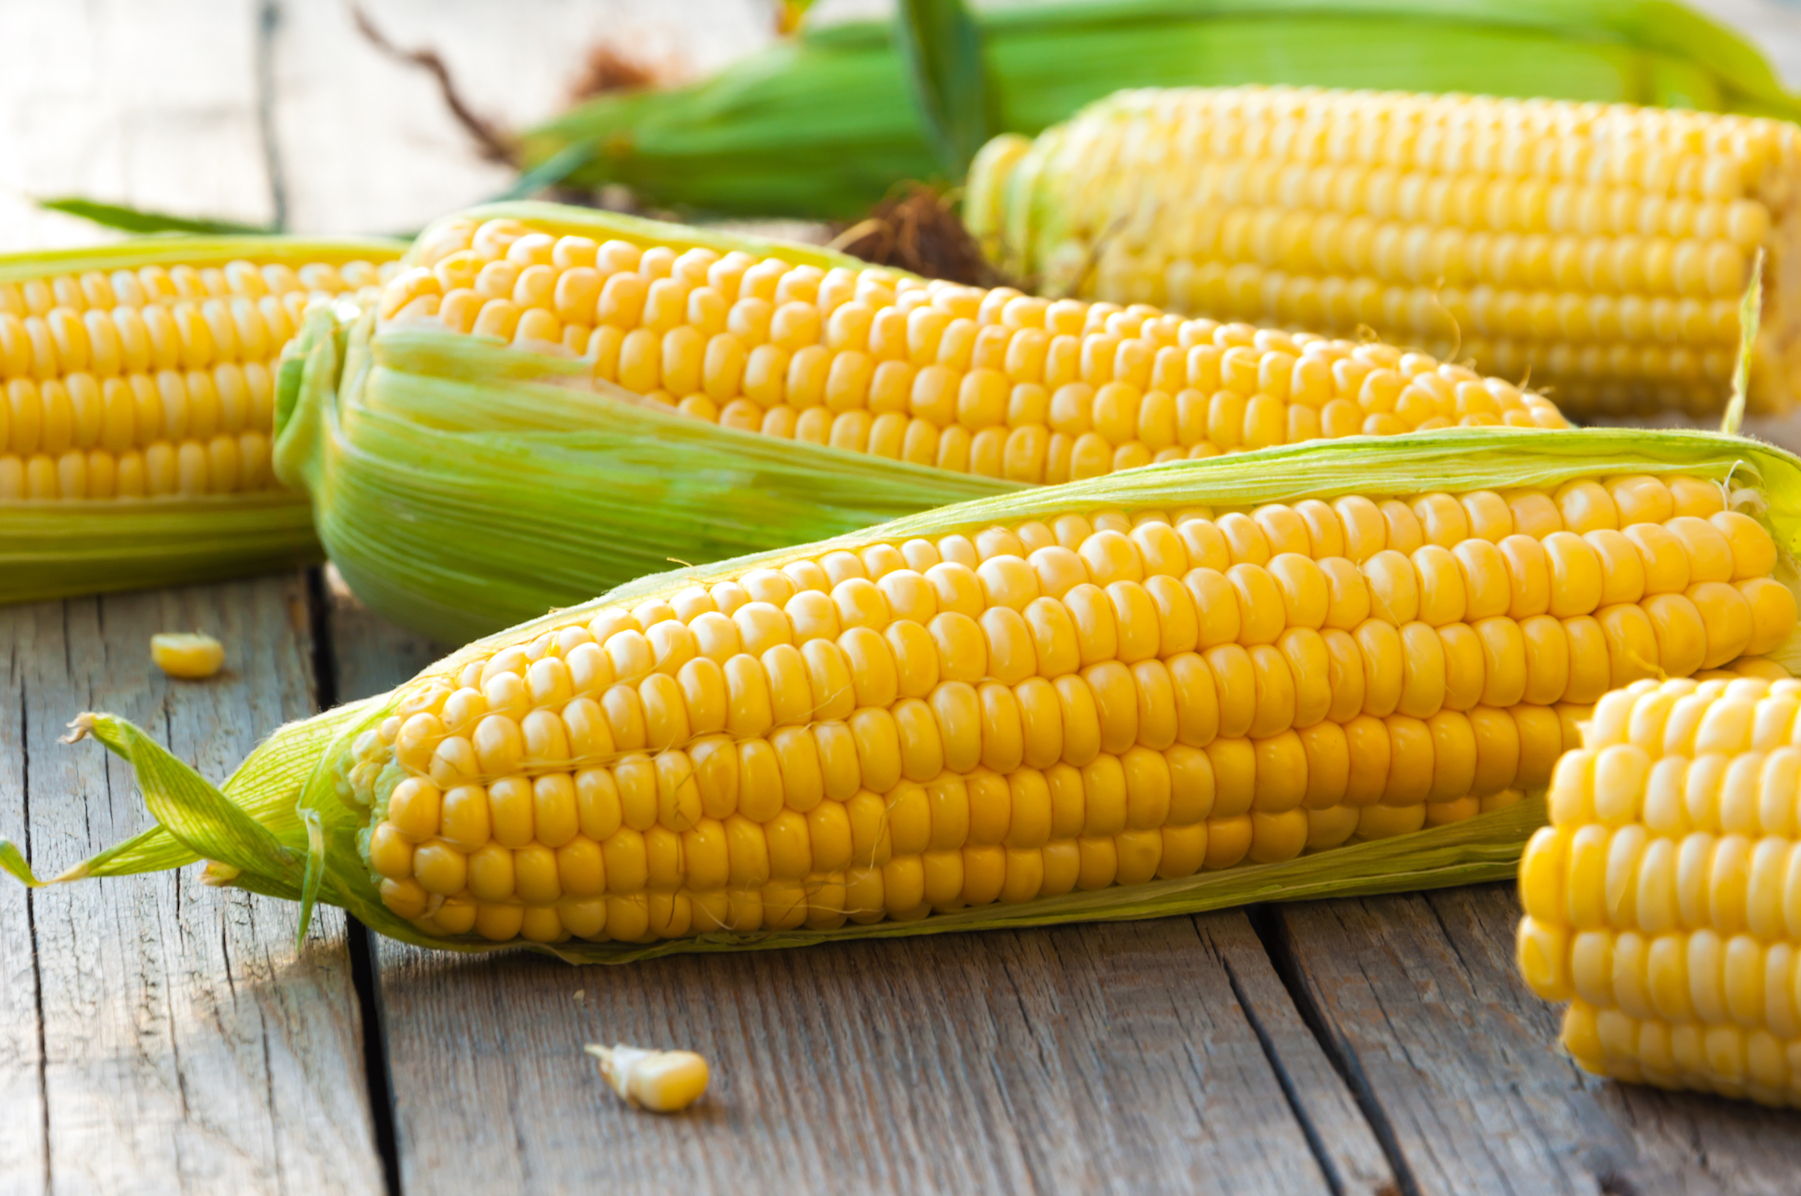 Genetically modifying corn to make it more nutritious could benefit millions of people and reduce agricultural costs.